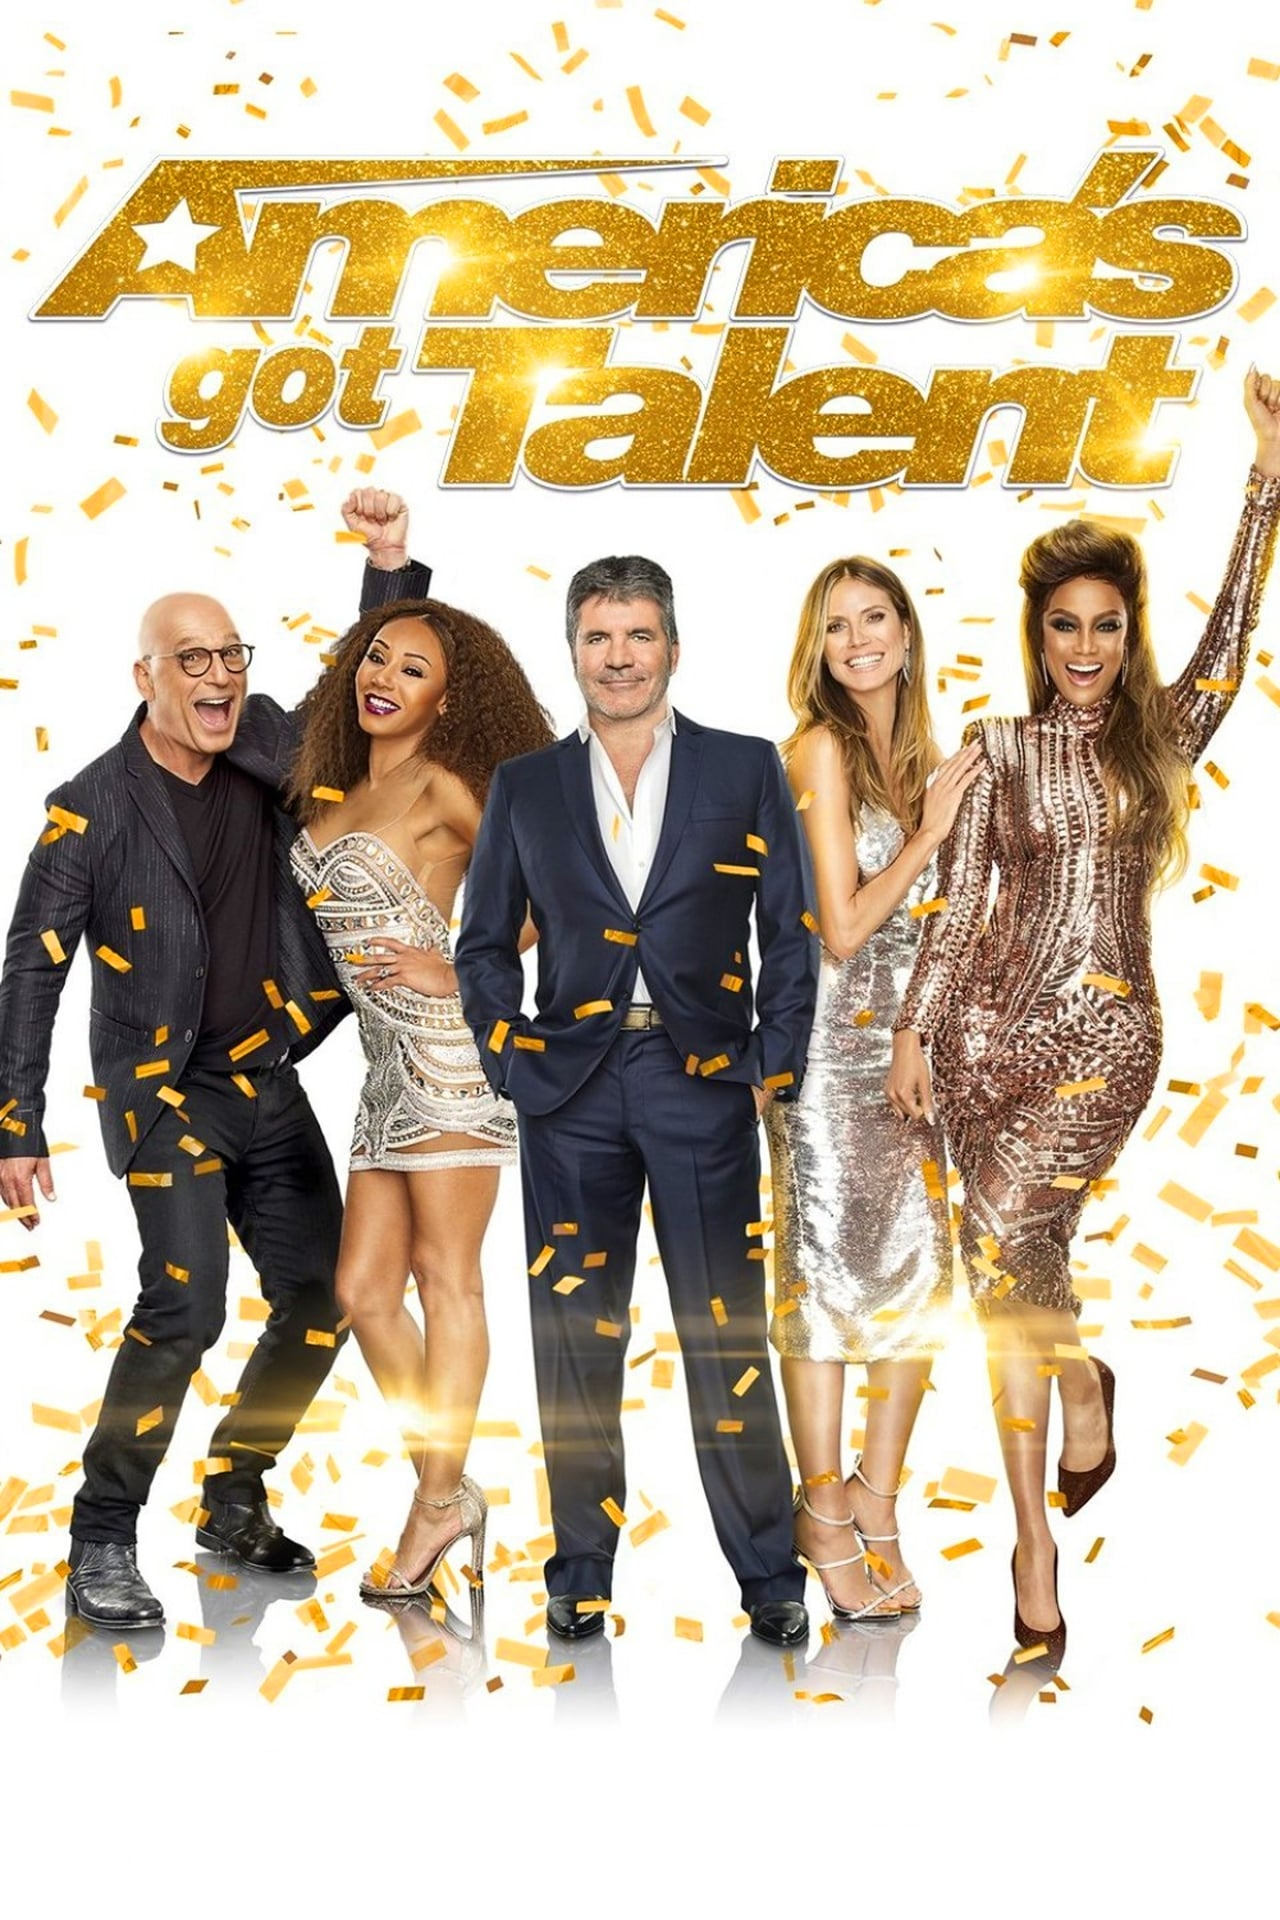 Putlocker America's Got Talent Season 13 (2018)